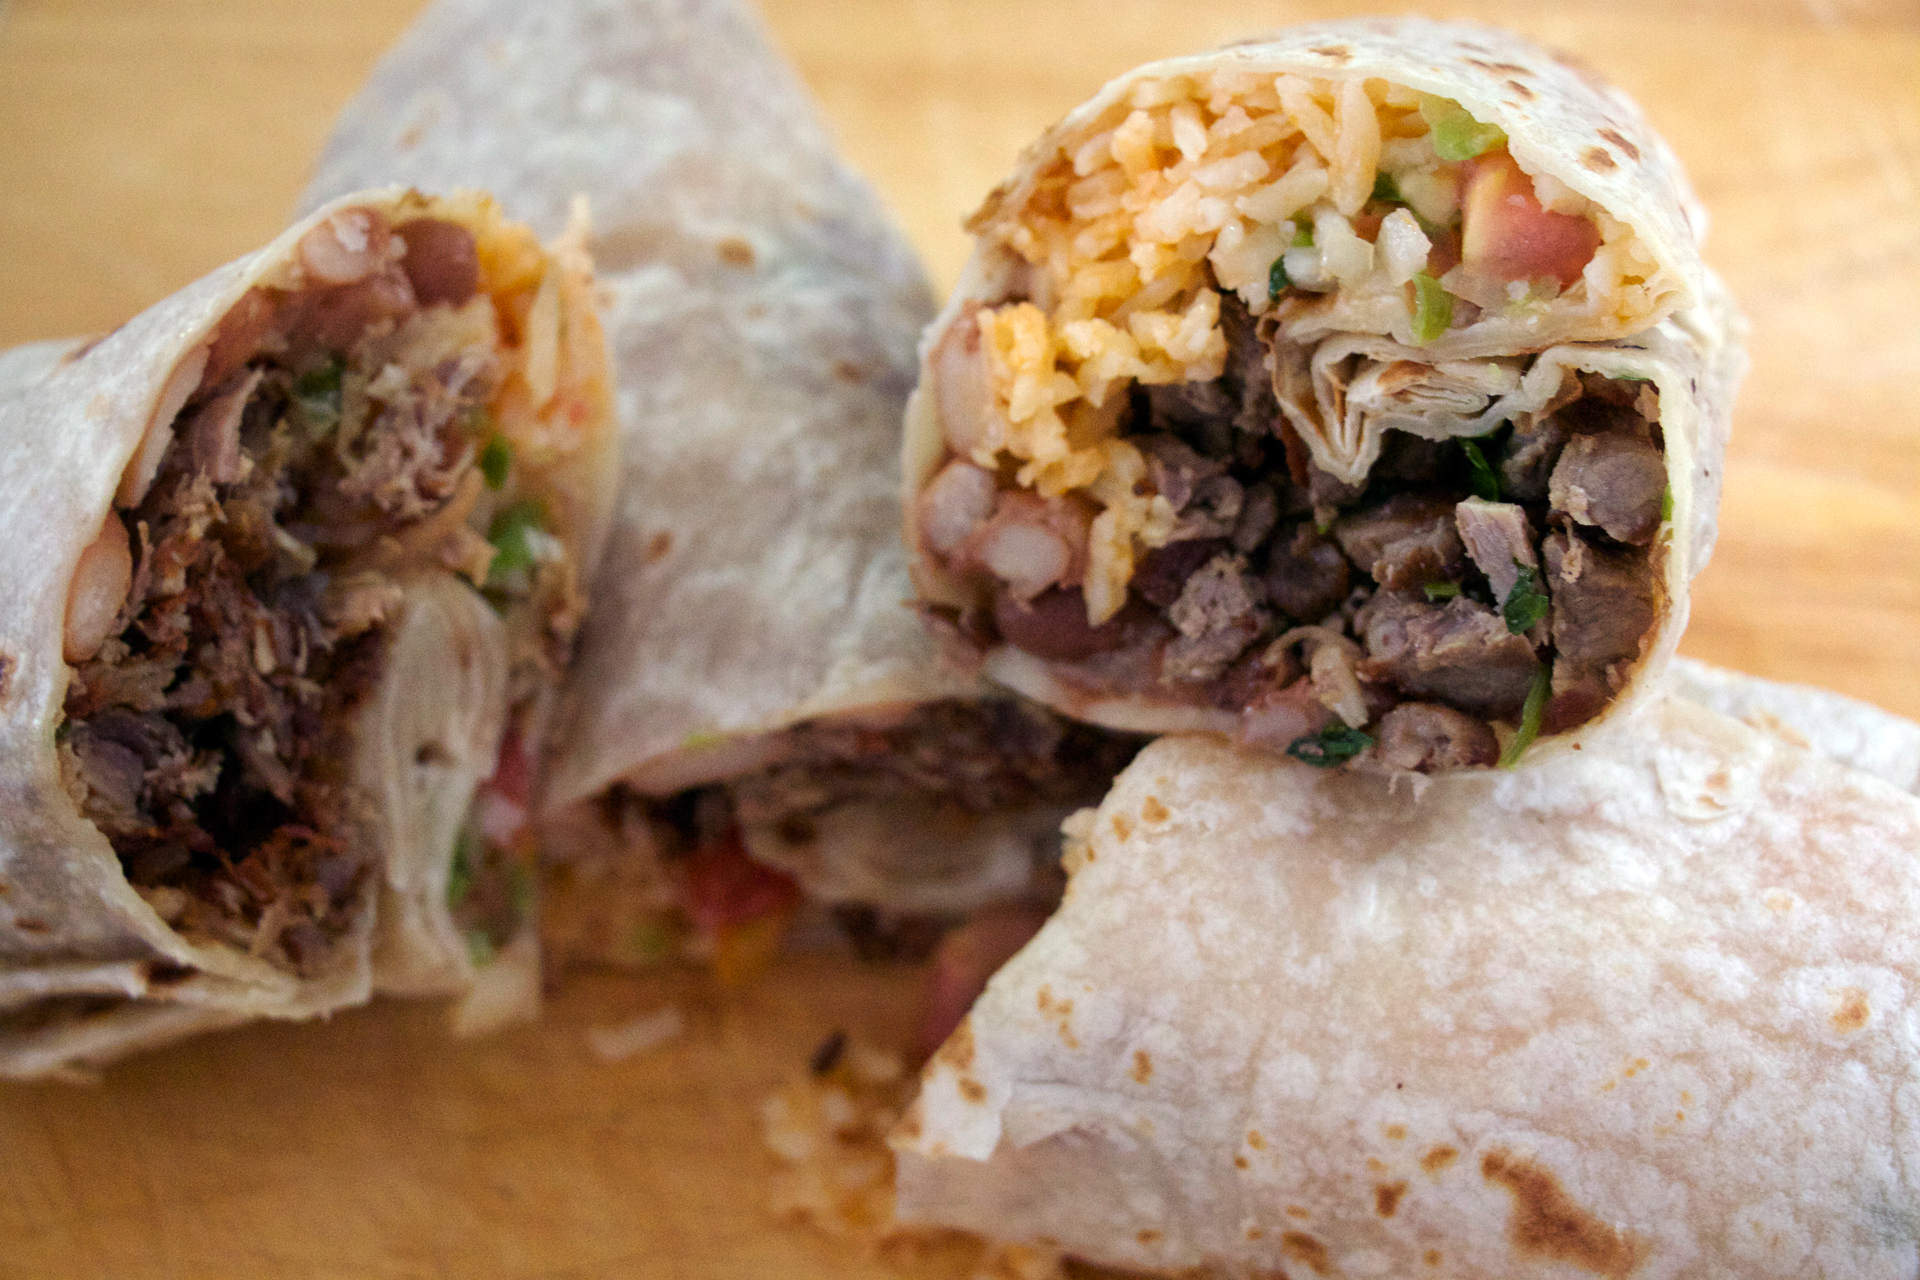 Carne asada and carnitas burritos.